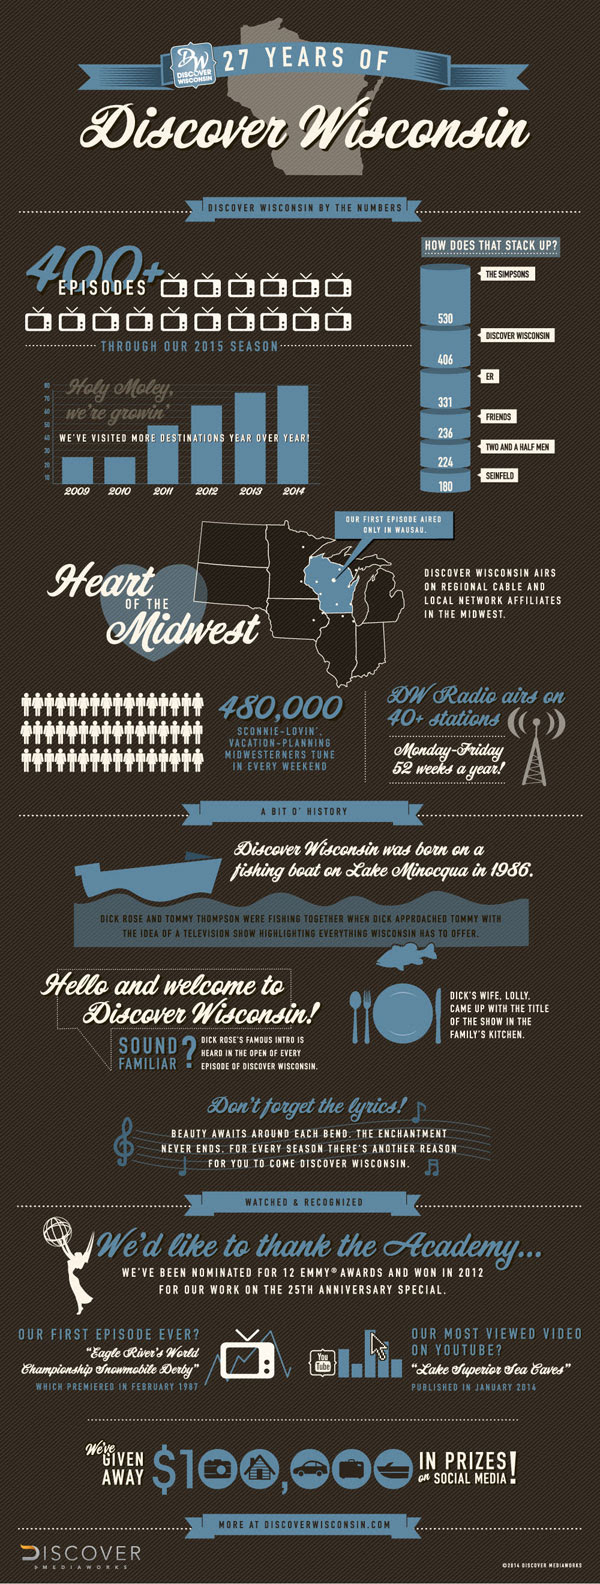 travel wisconsin infographic